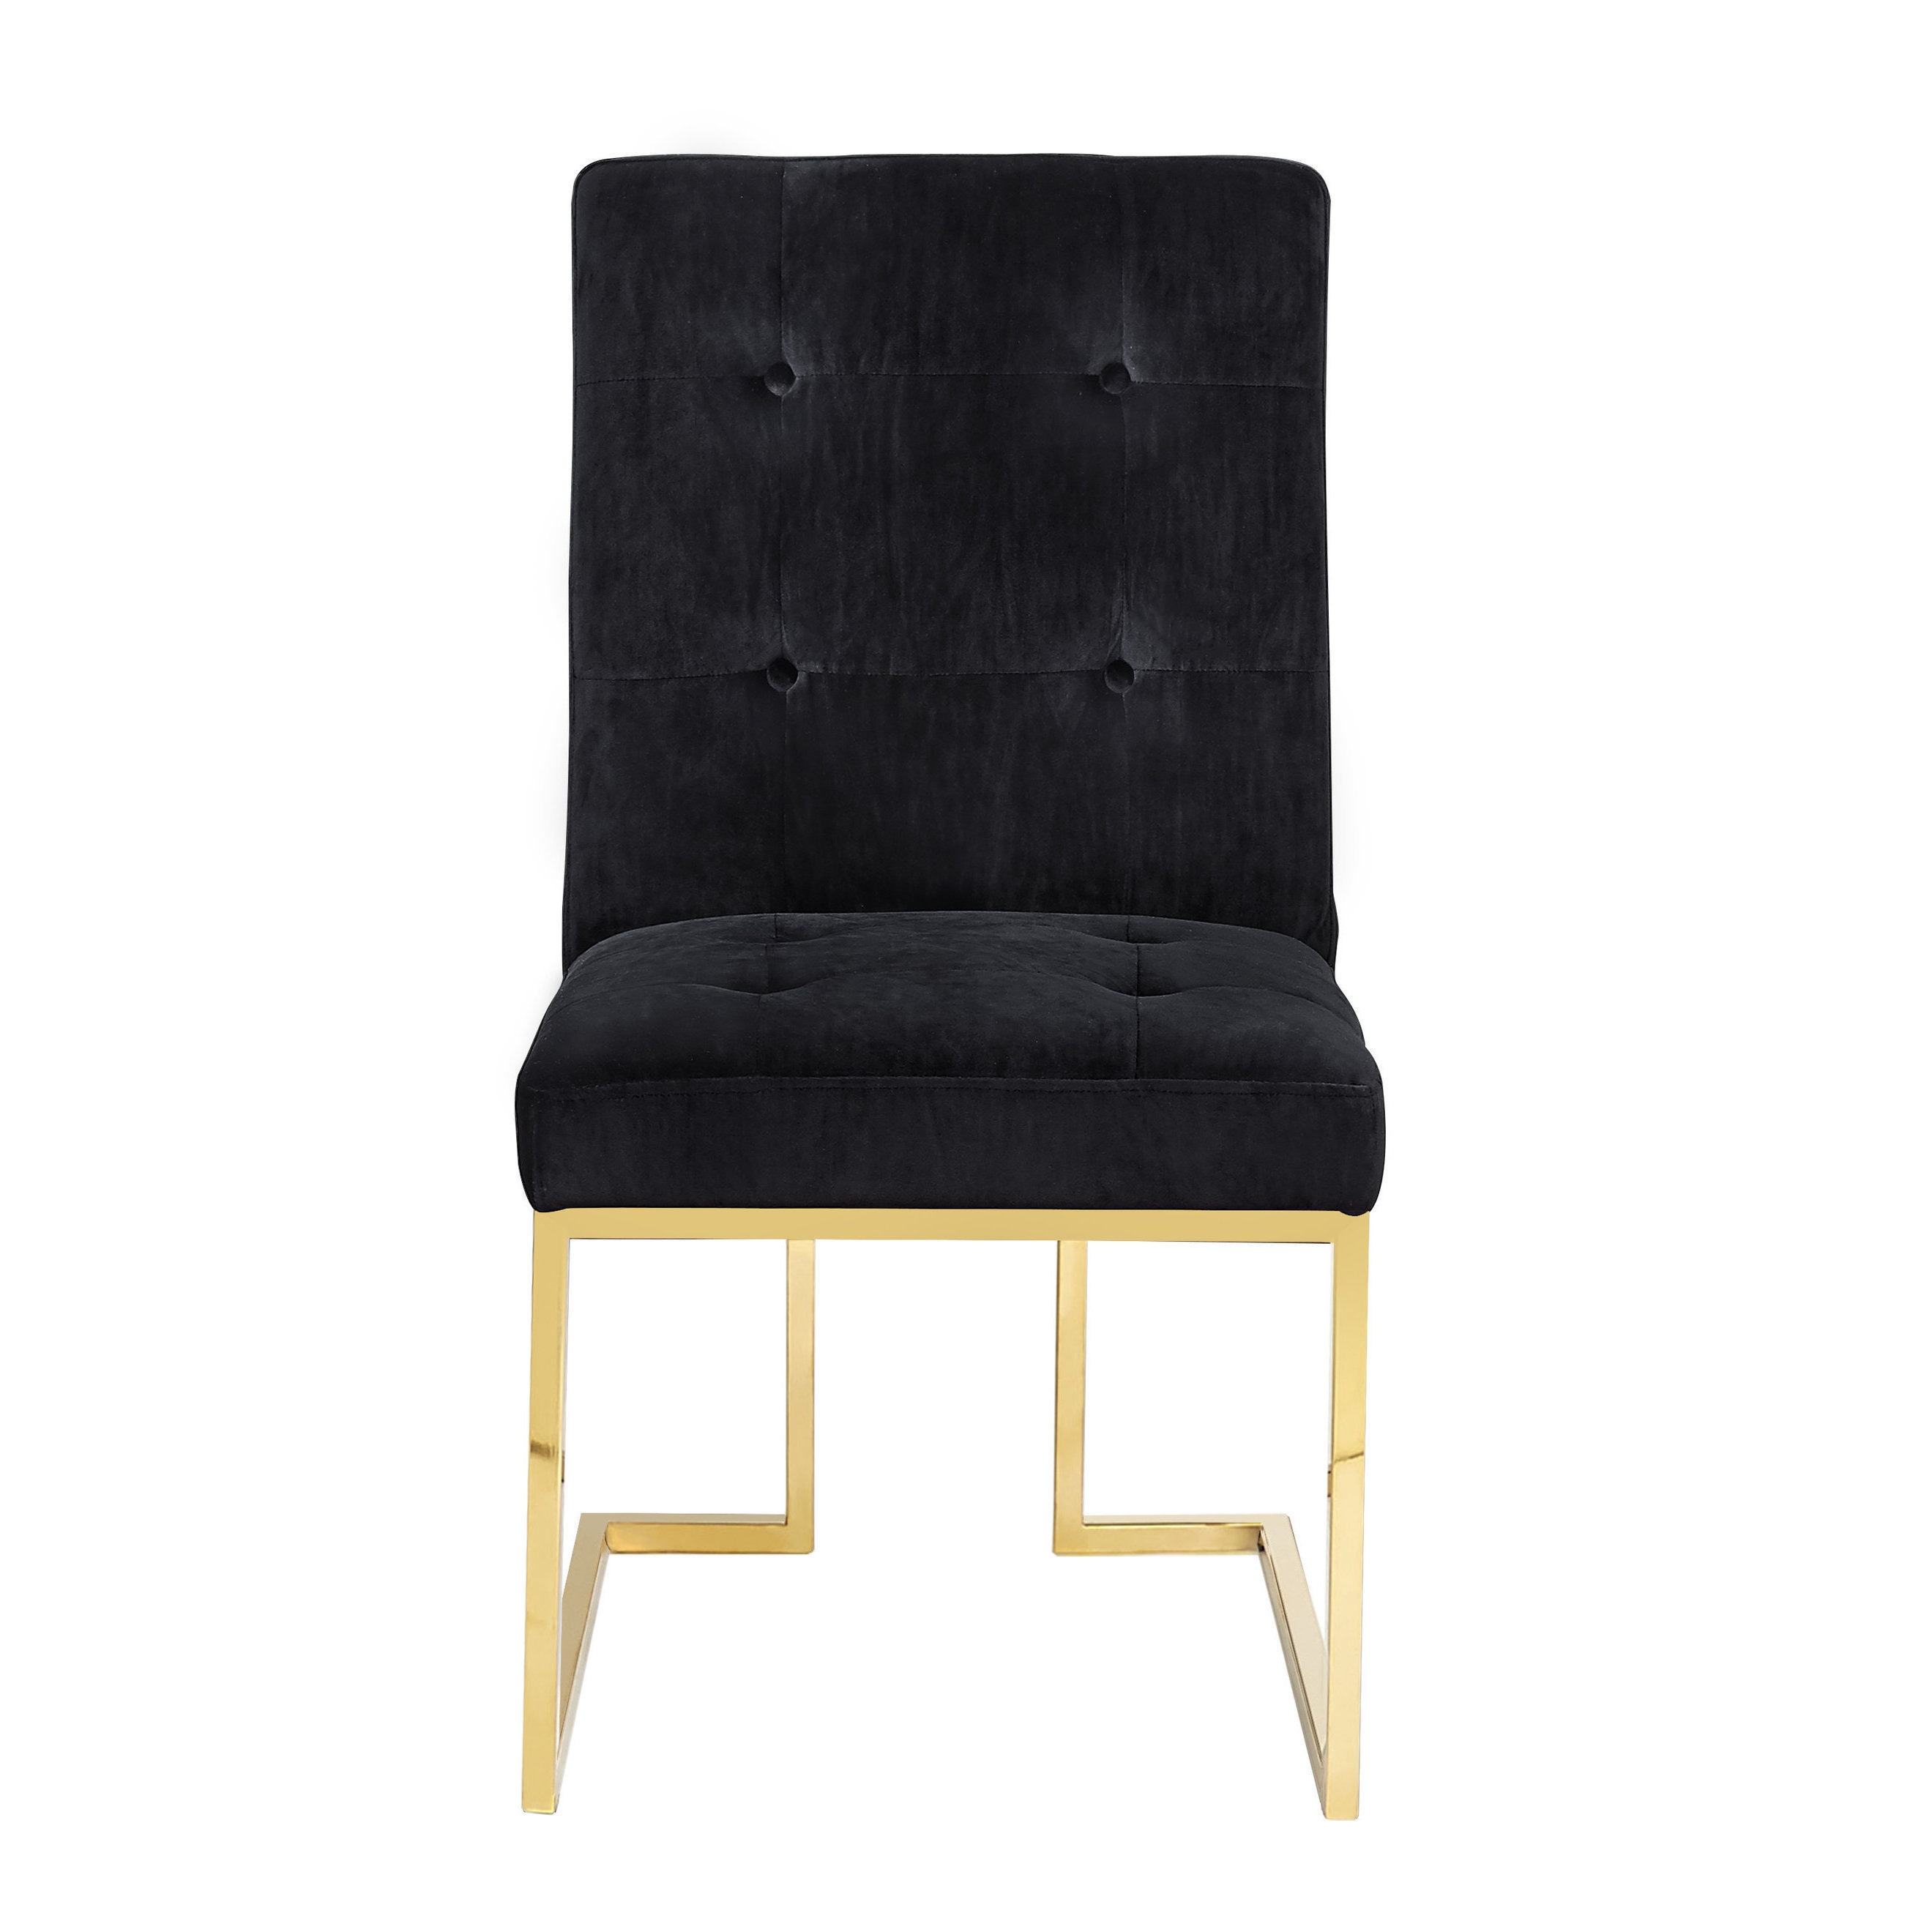 black velvet chair hanging chairs canada shop akiko set of 2 free shipping today overstock com 15871159